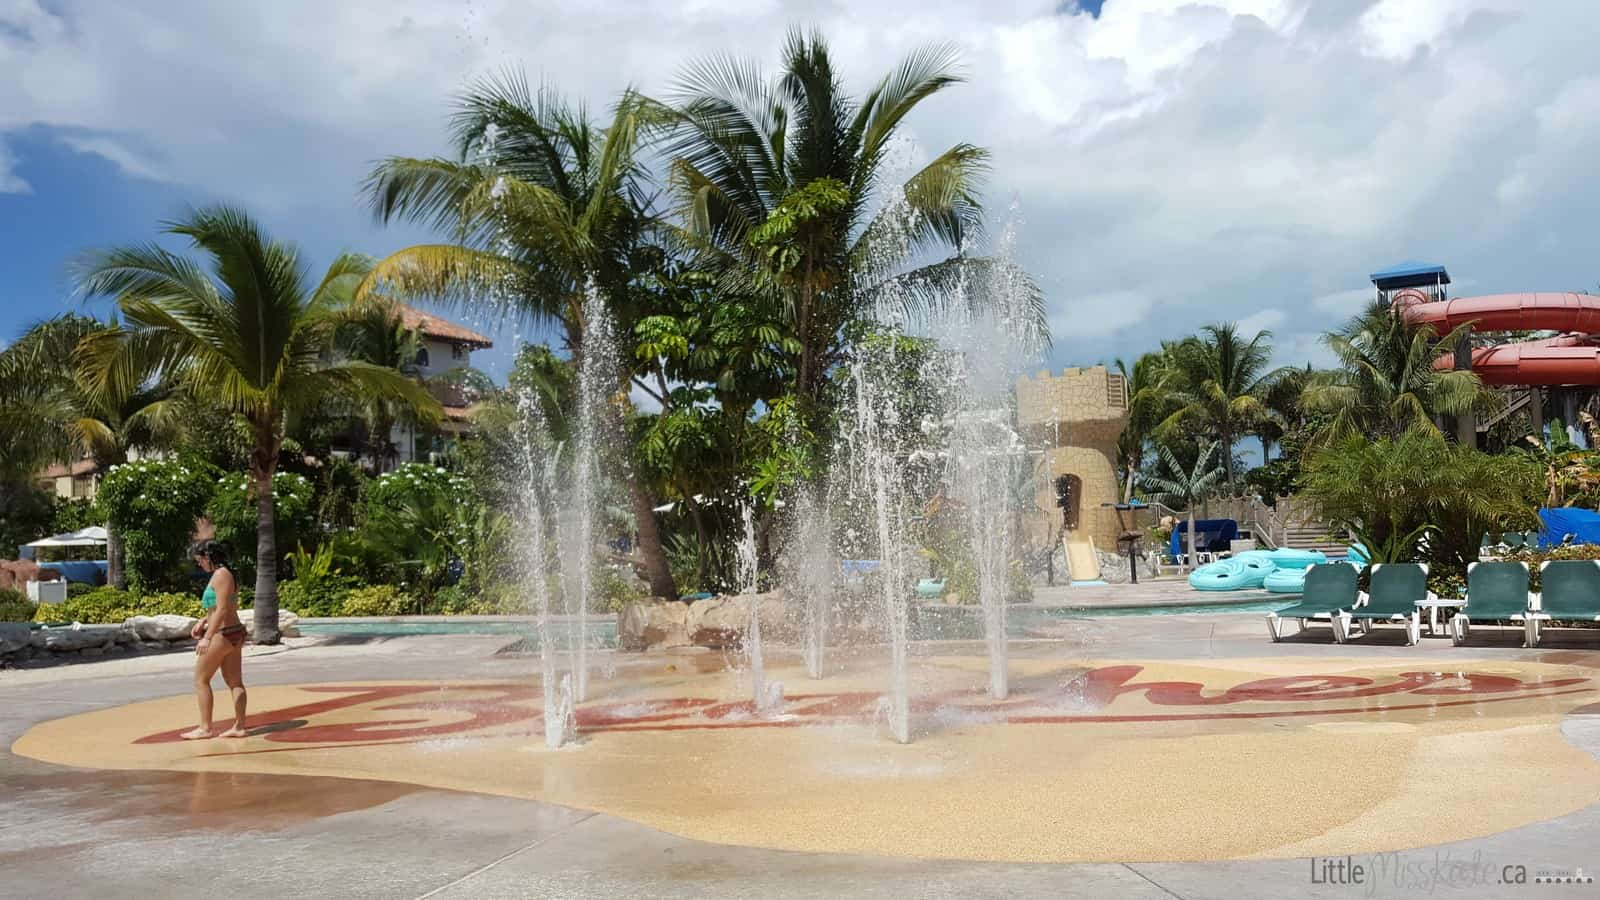 beaches turks and caicos review water park pirate playgroung